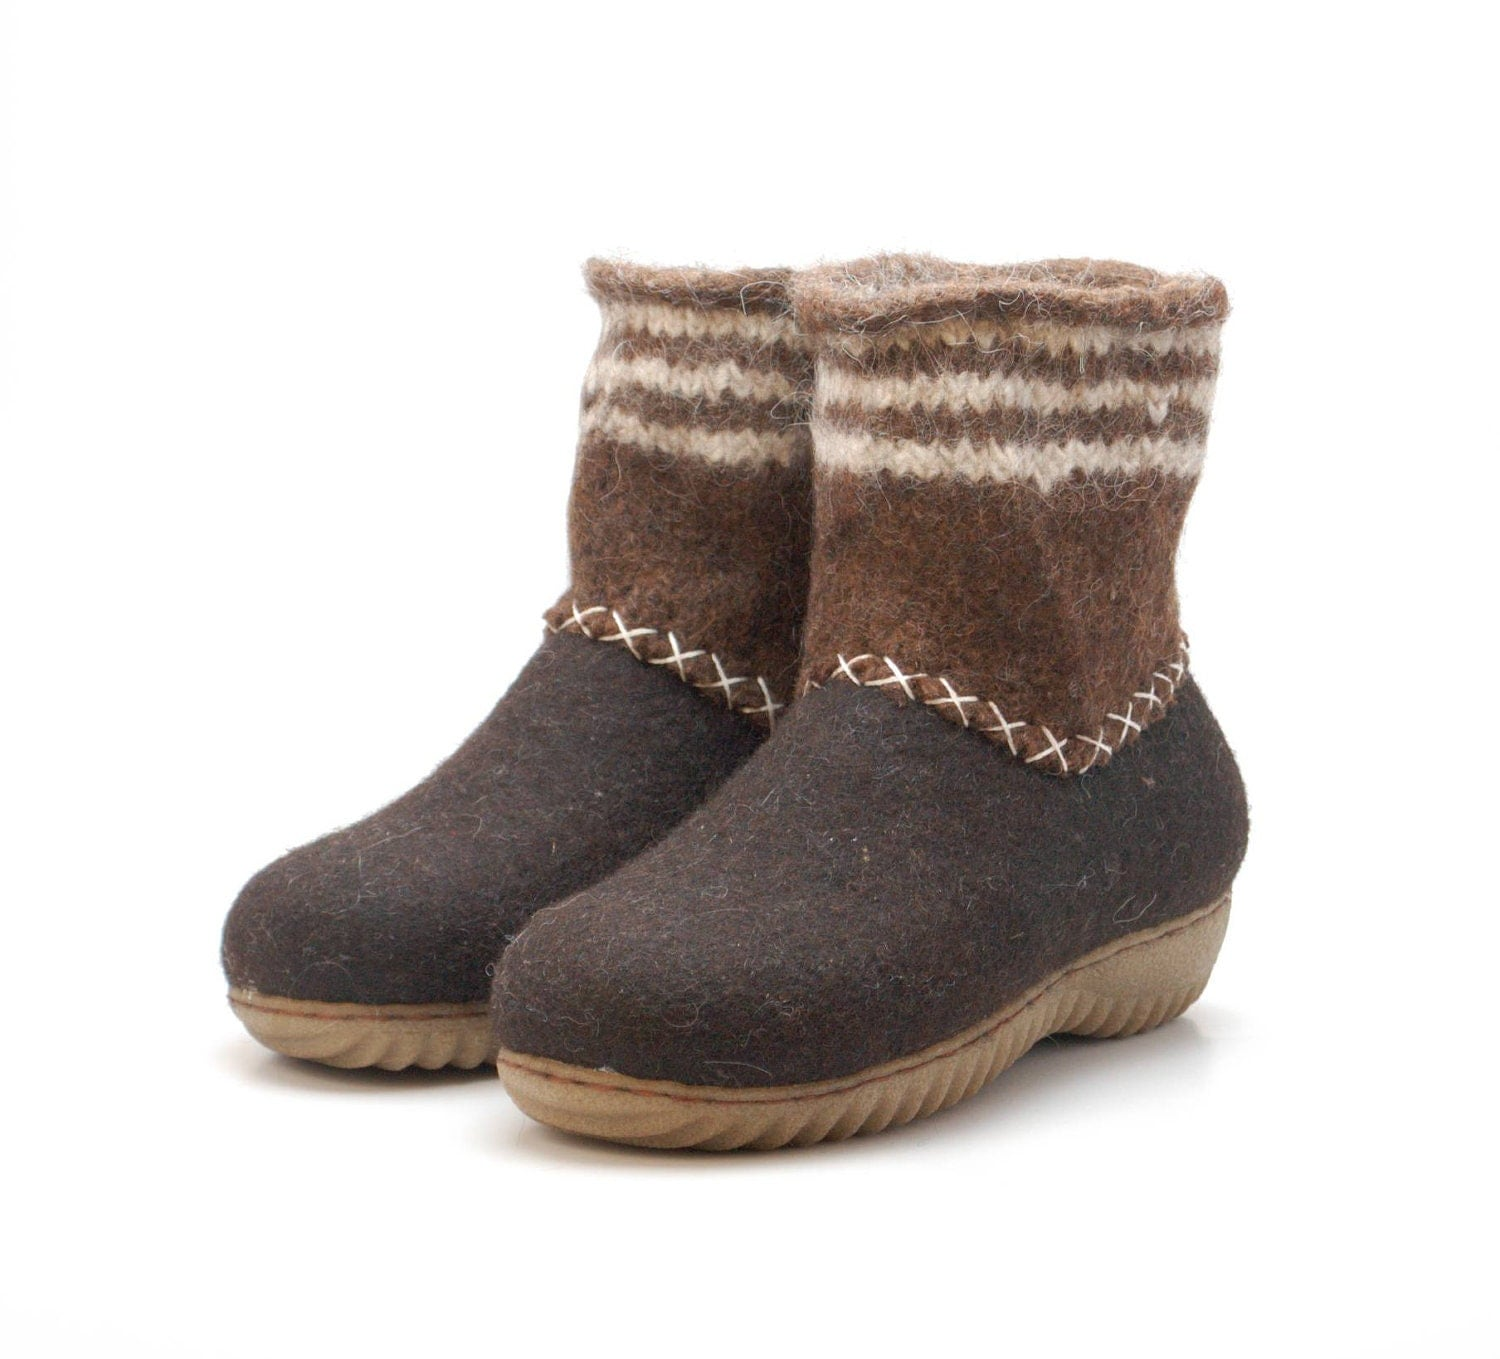 New Shoes Made Of Wool